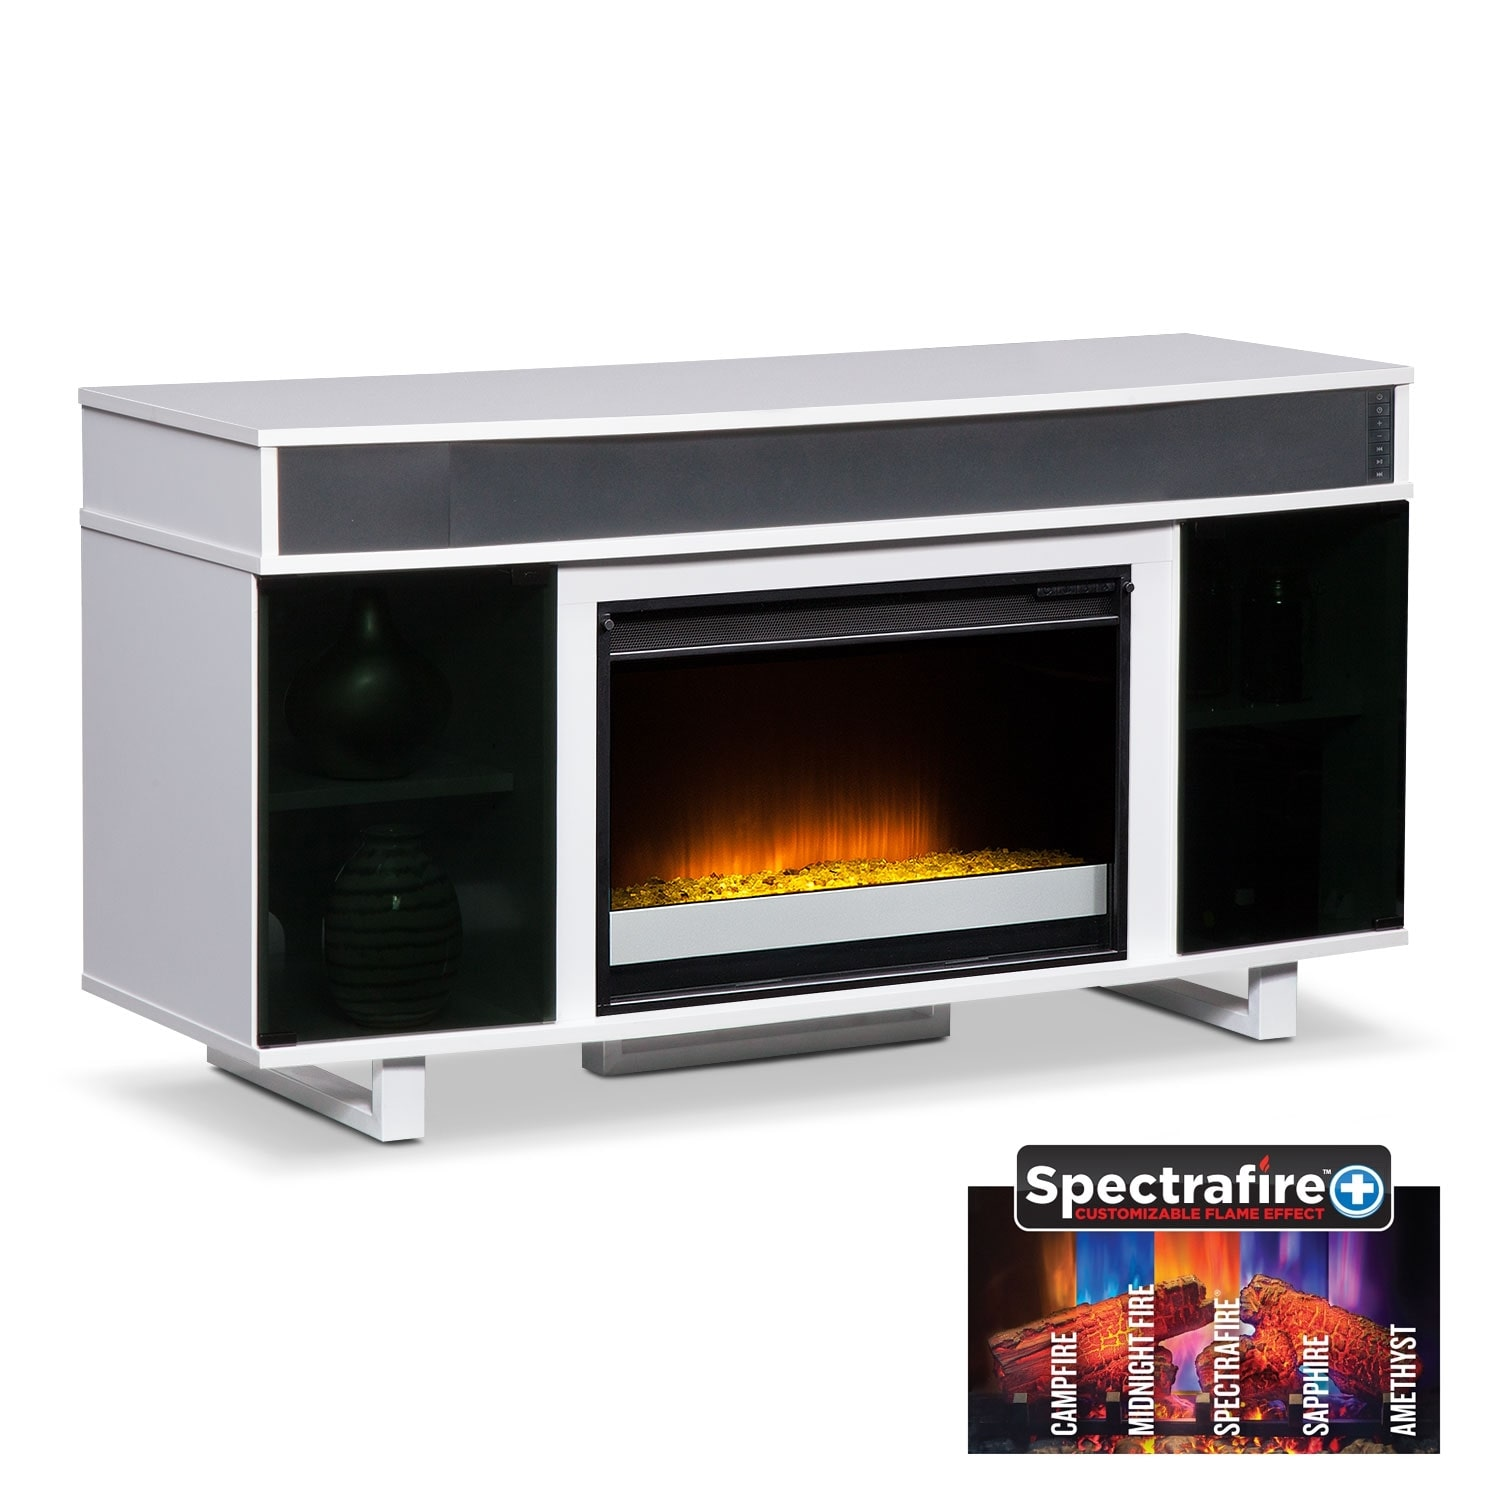 "Pacer 56"" Contemporary Fireplace TV Stand with Sound Bar - White"